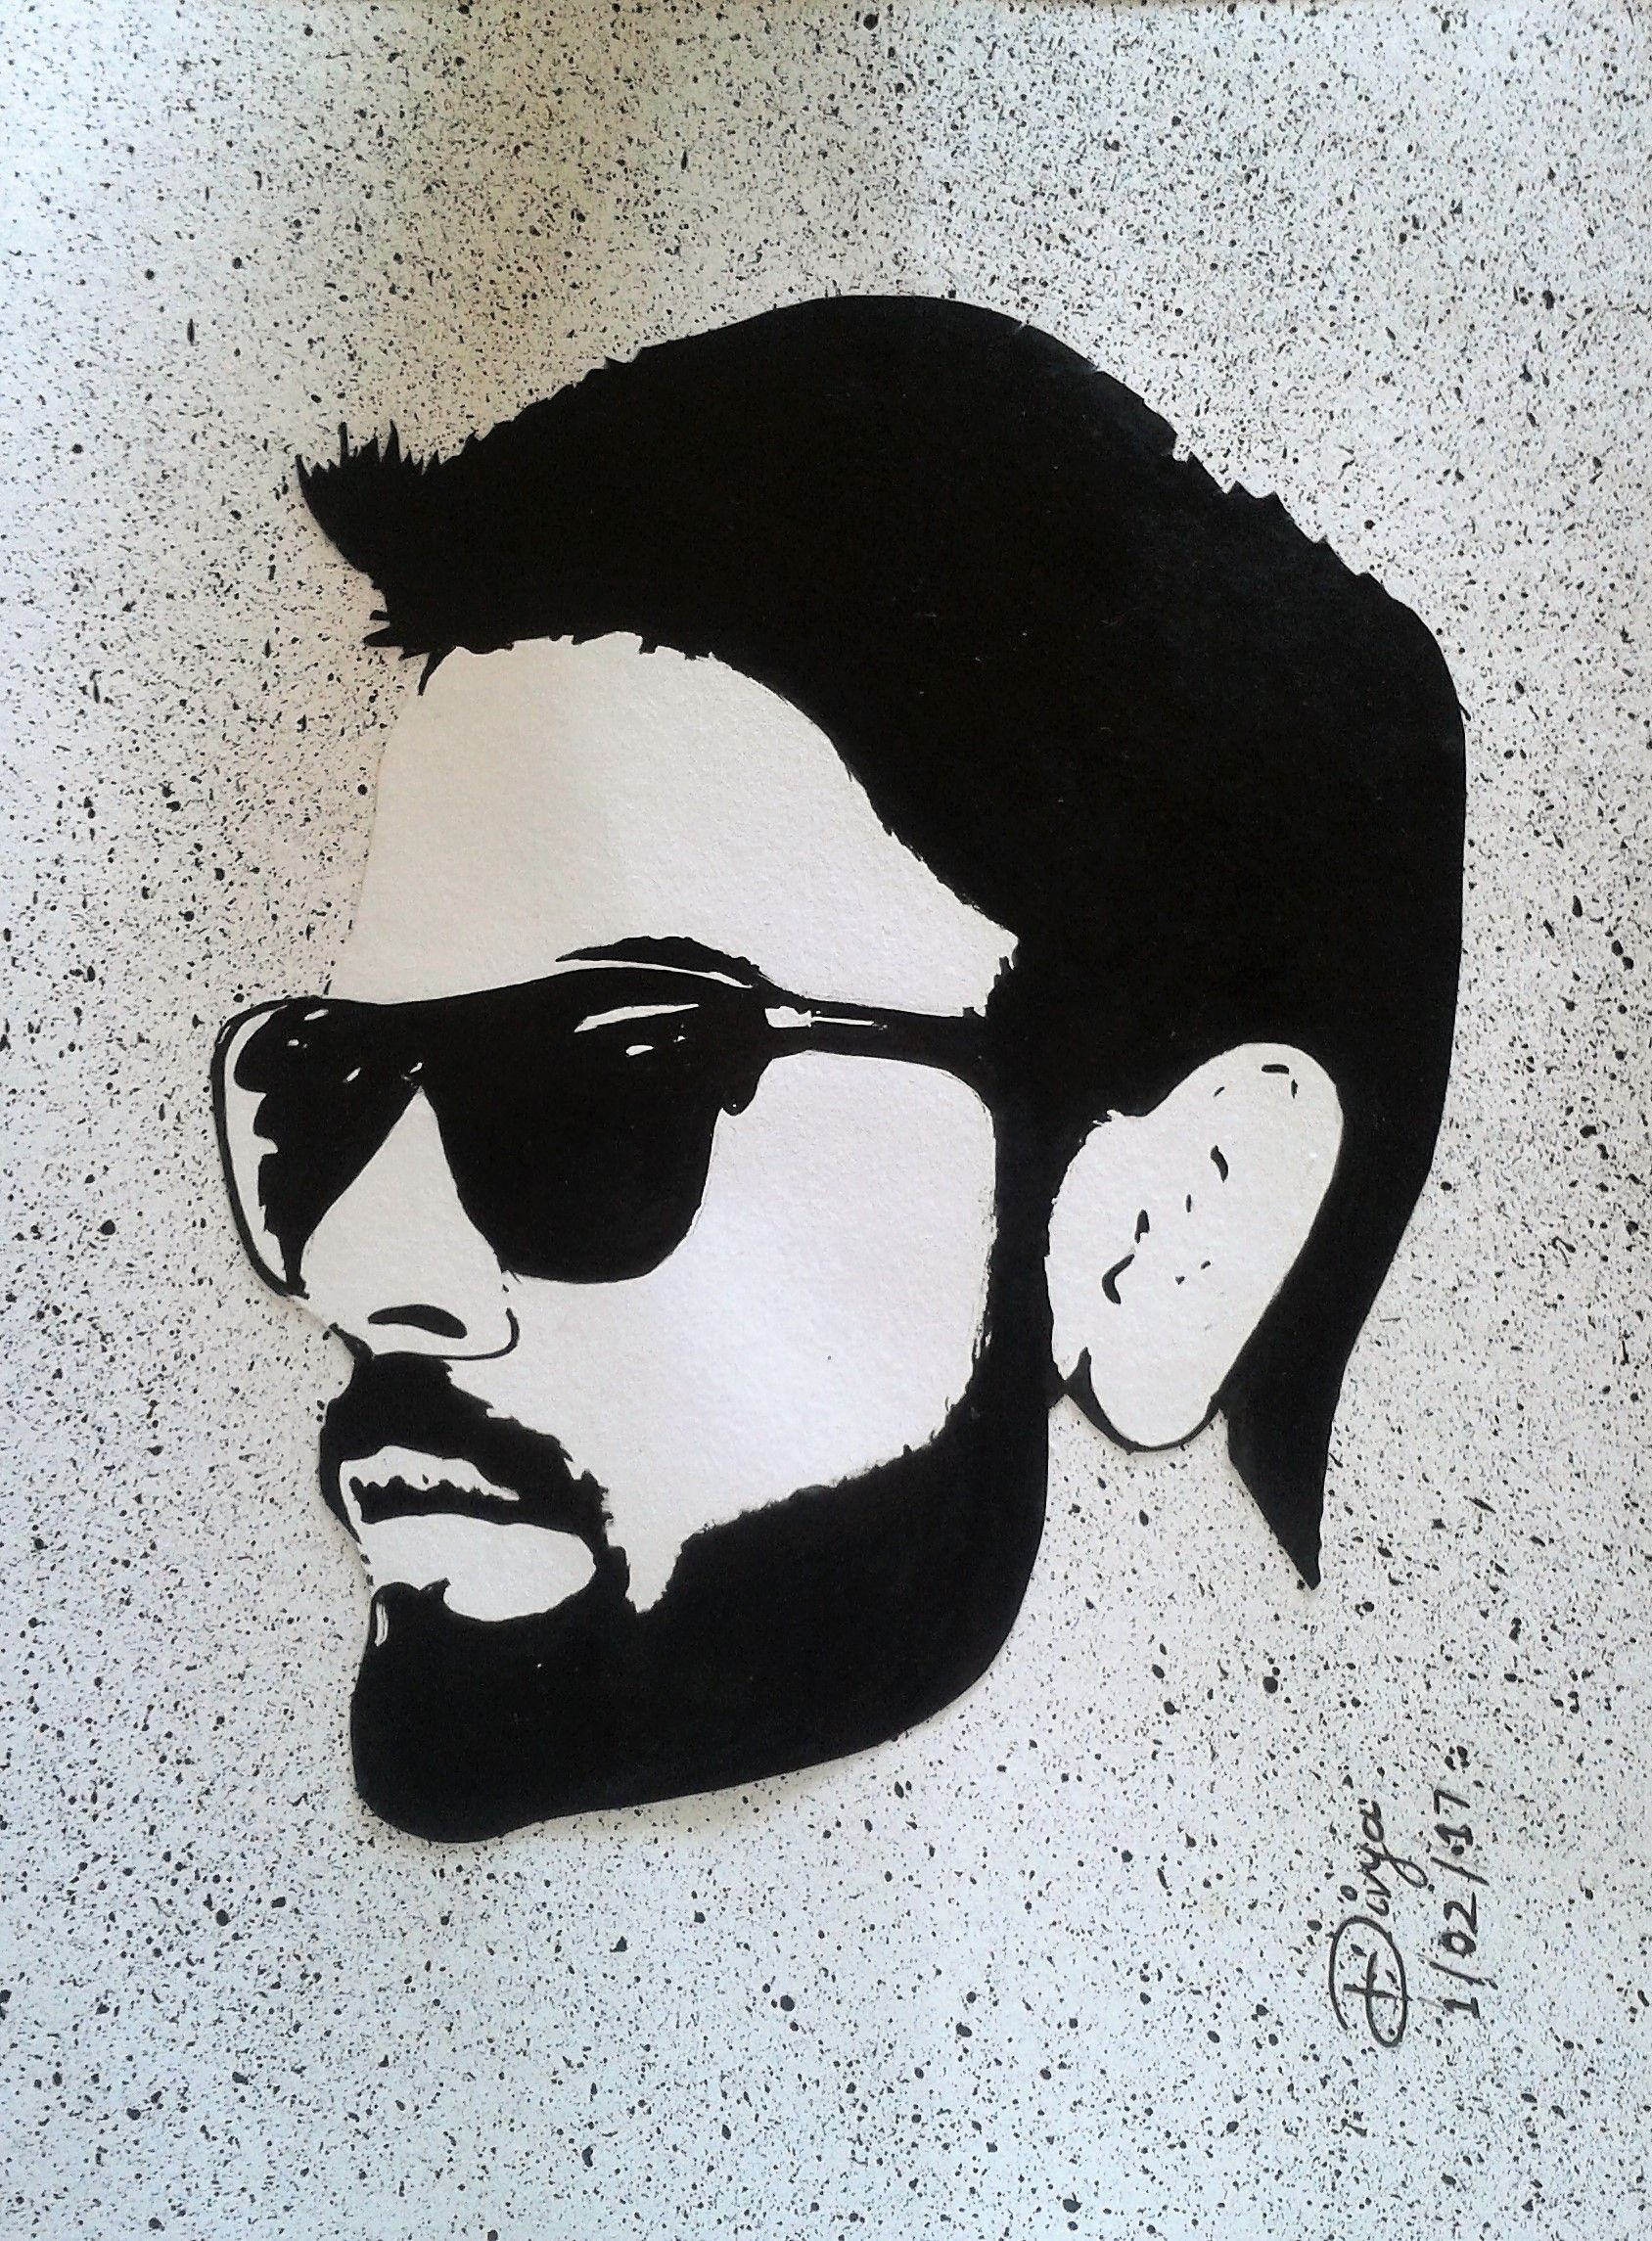 Virat Kohli Easy Pencil Skach Pic Black And White